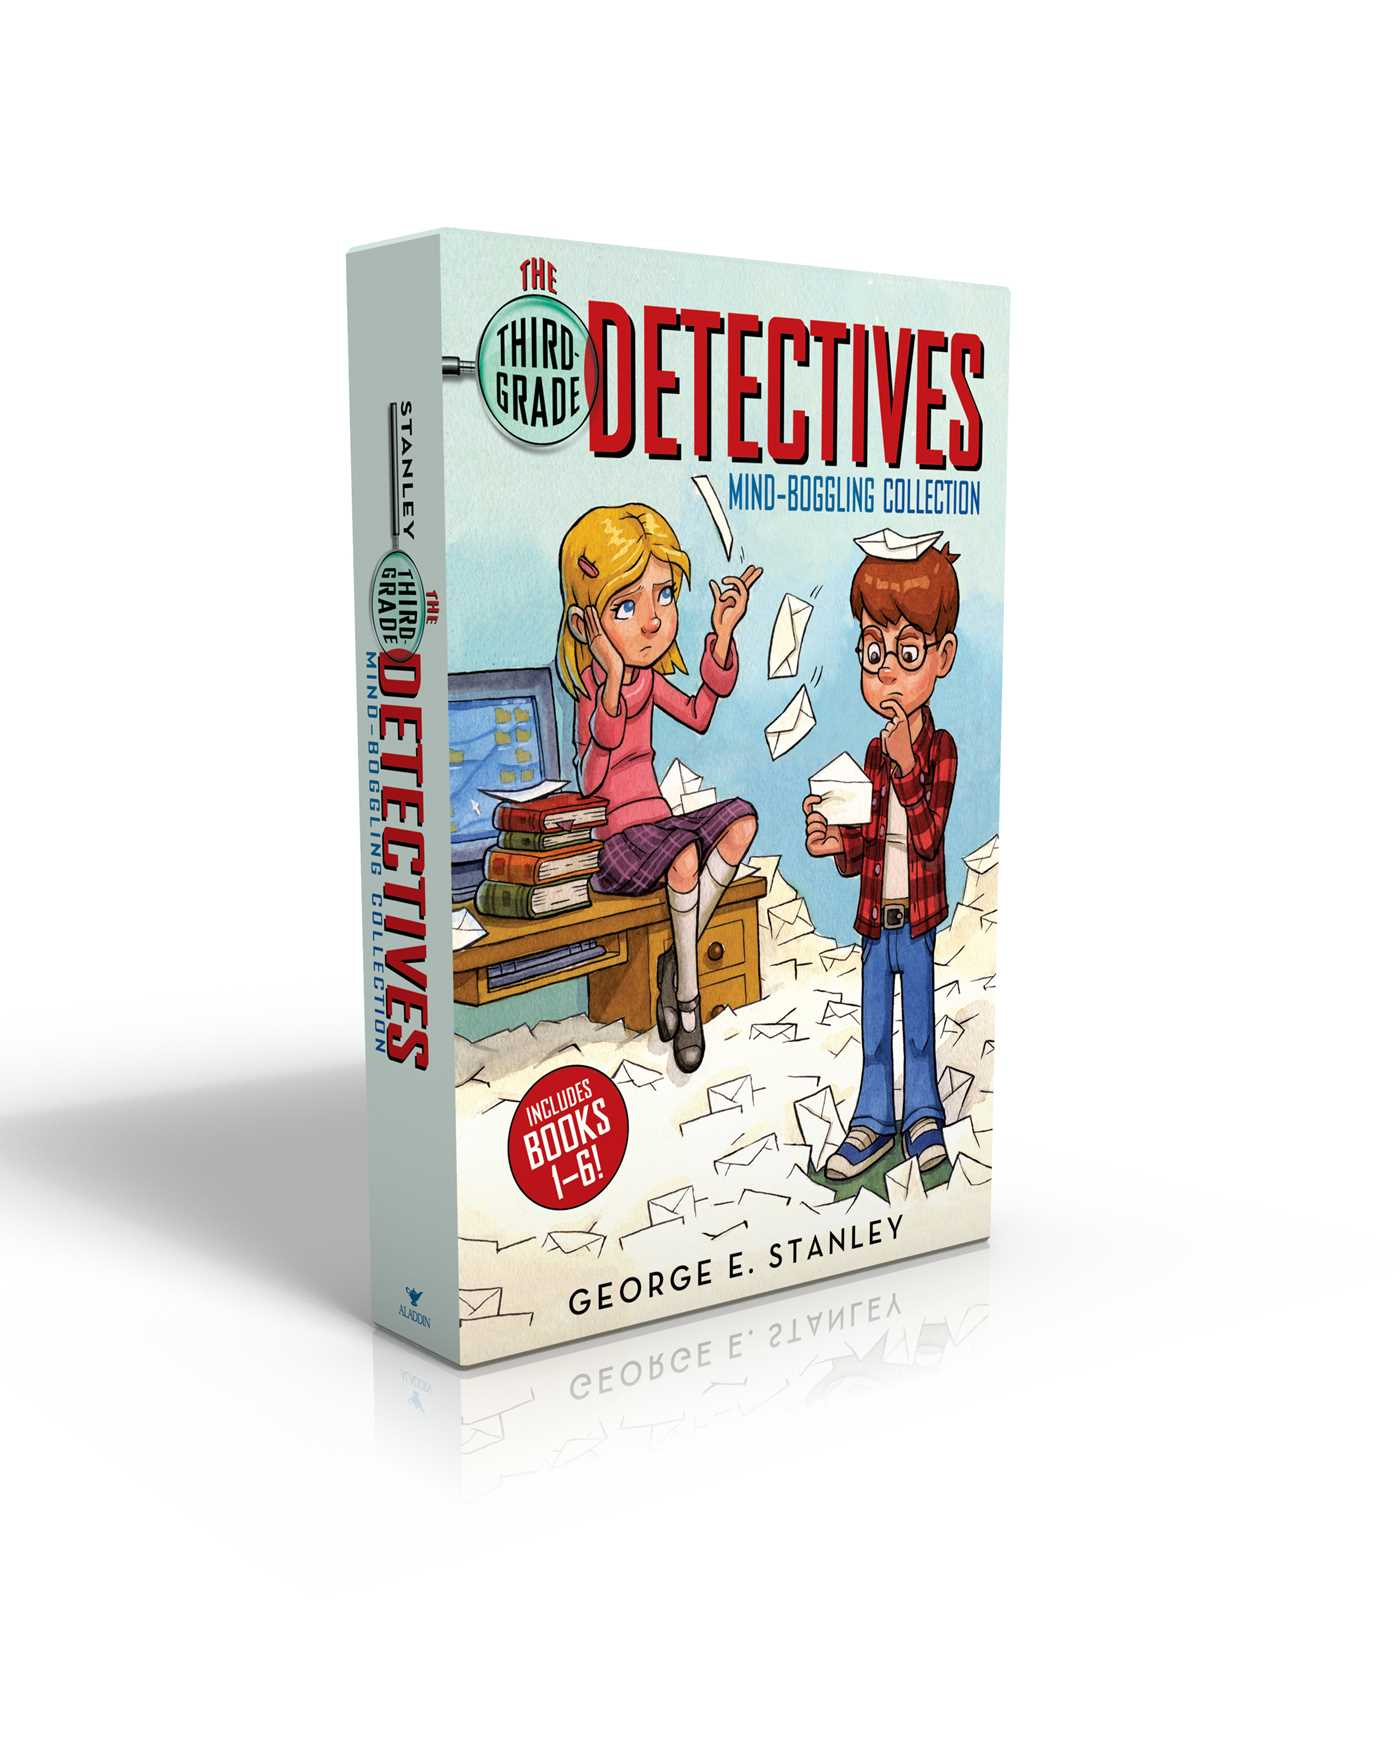 The third grade detectives mind boggling collection 9781481477390 hr